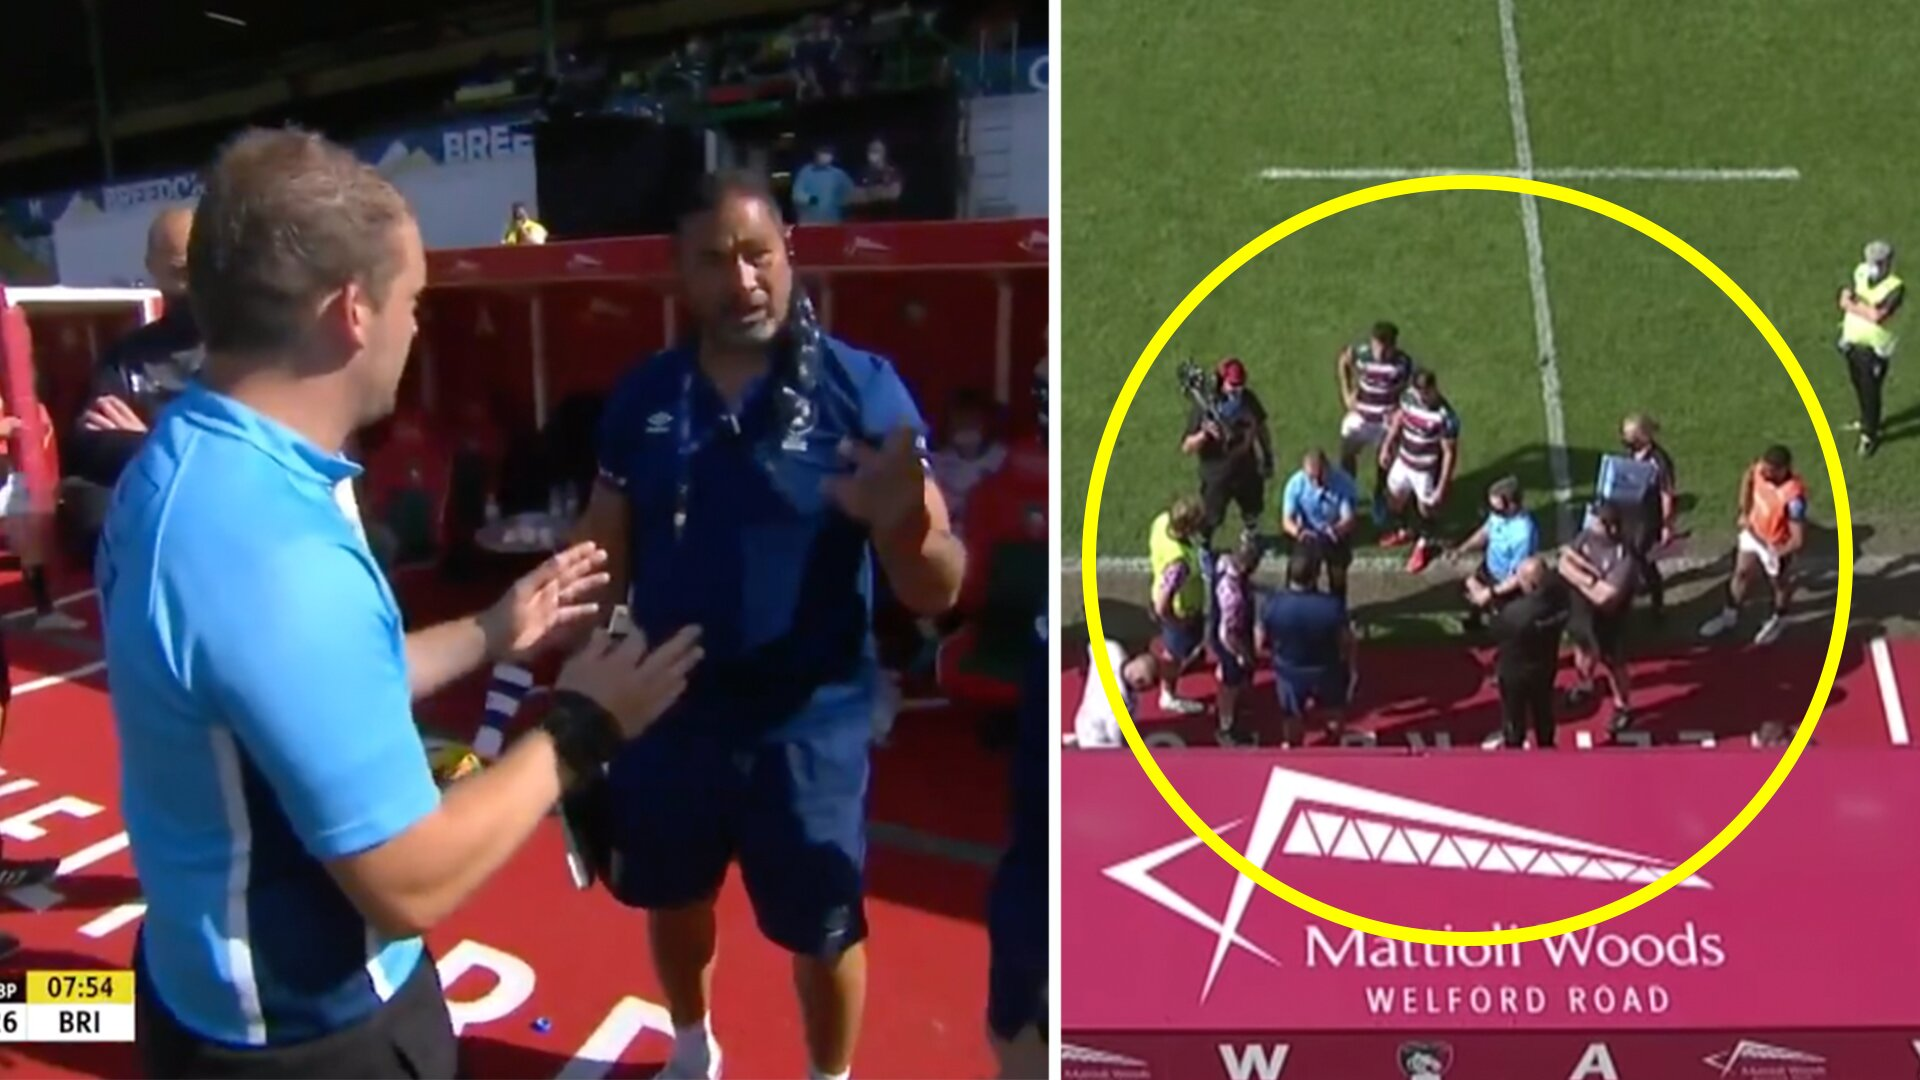 New video shows what caused the mega rugby brawl between Leicester & Bristol